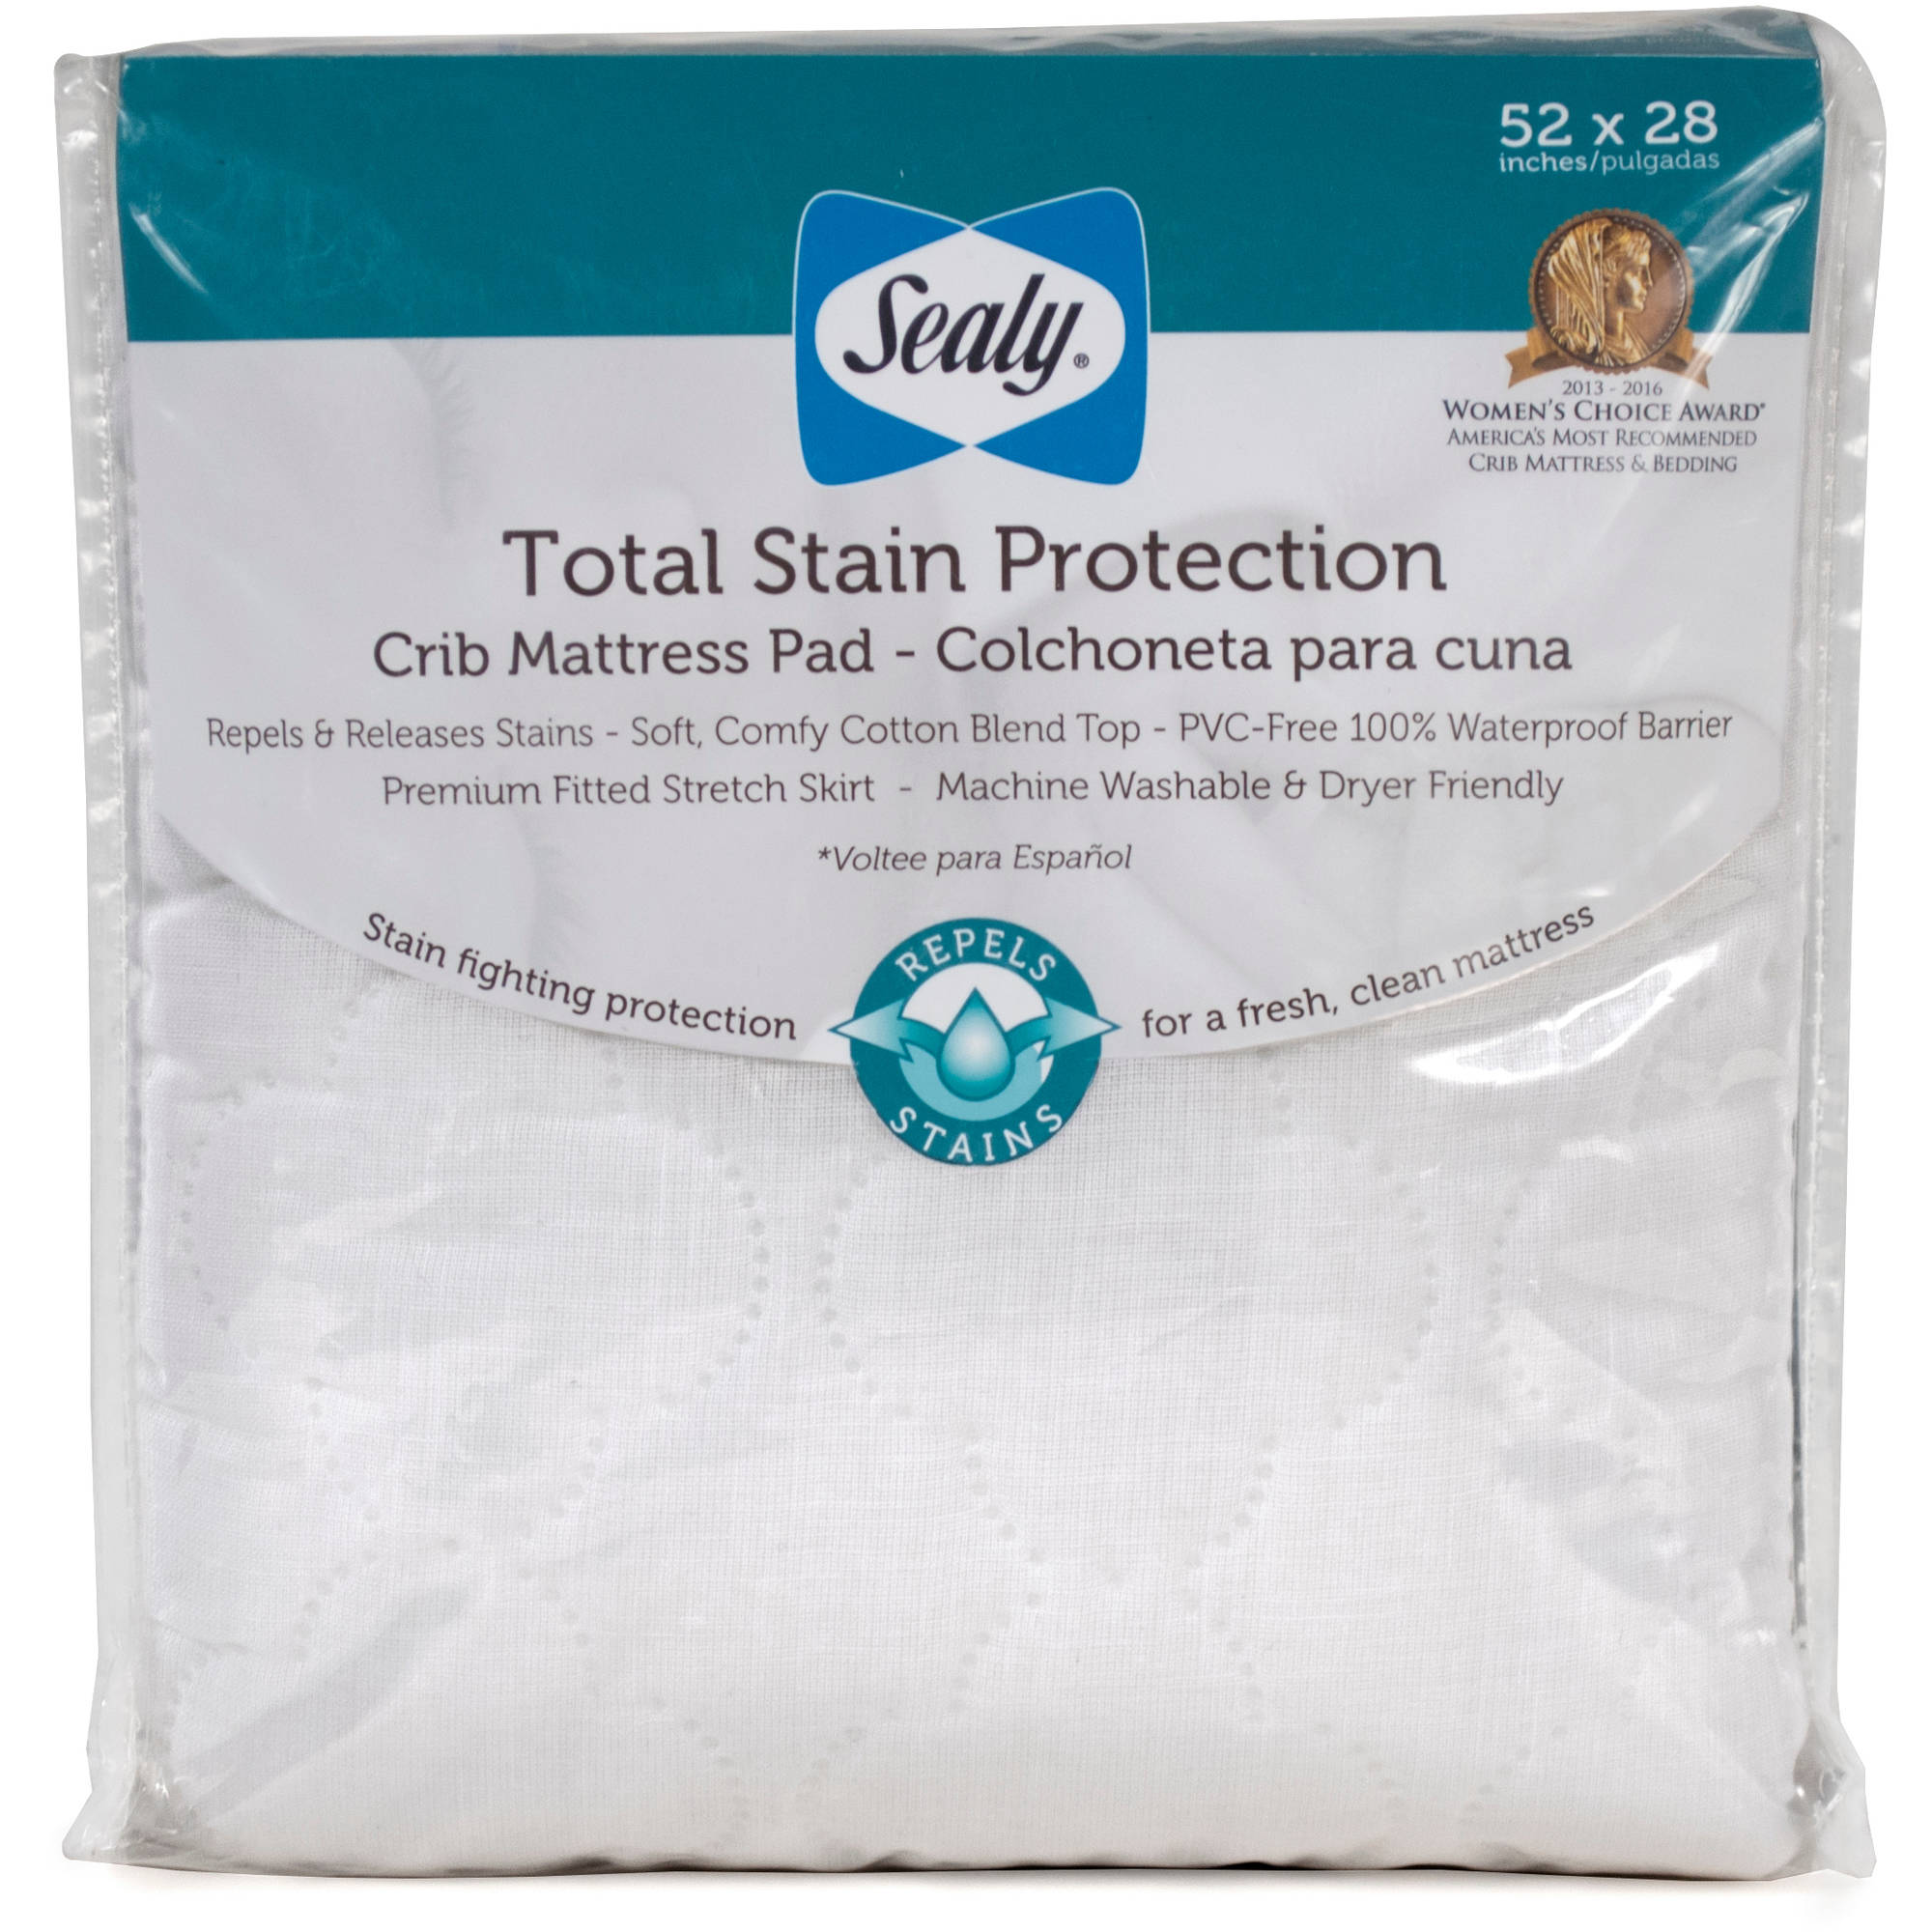 Sealy Total Stain Protection Crib Mattress Pad